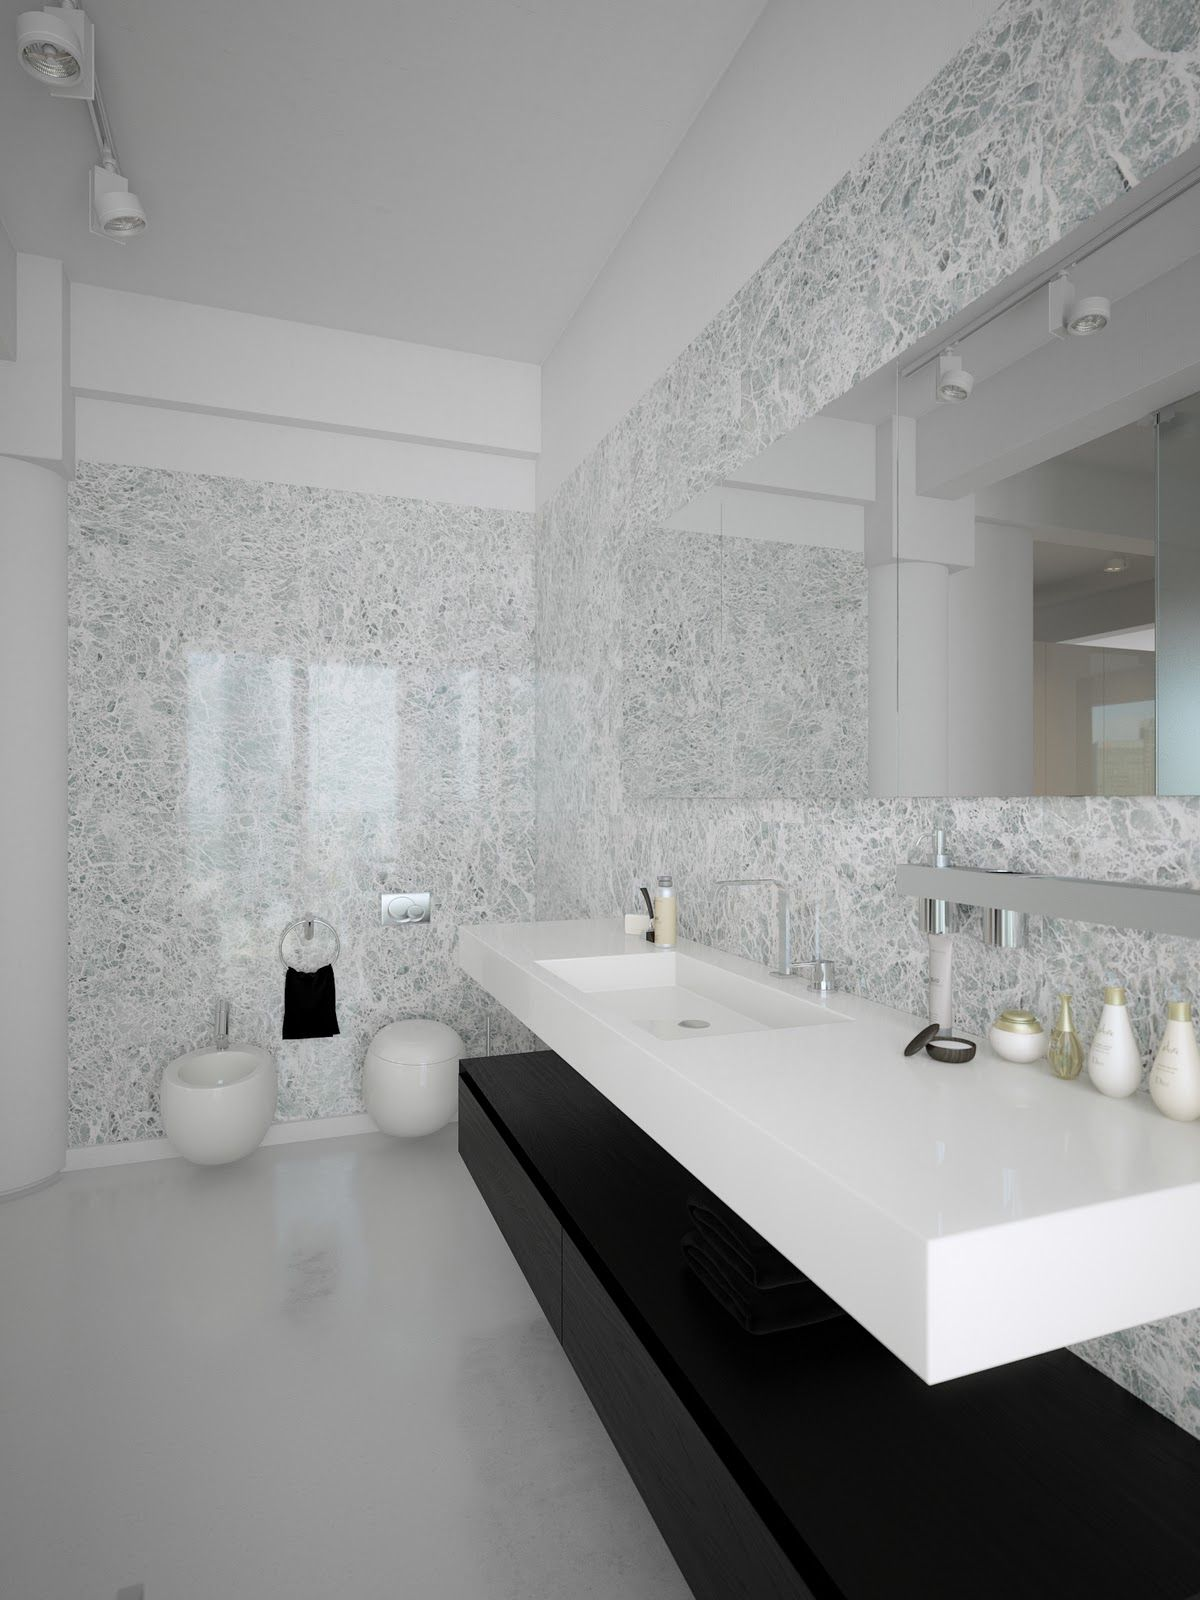 Coolest minimalist modern bathroom design contemporary for Best bathroom designs